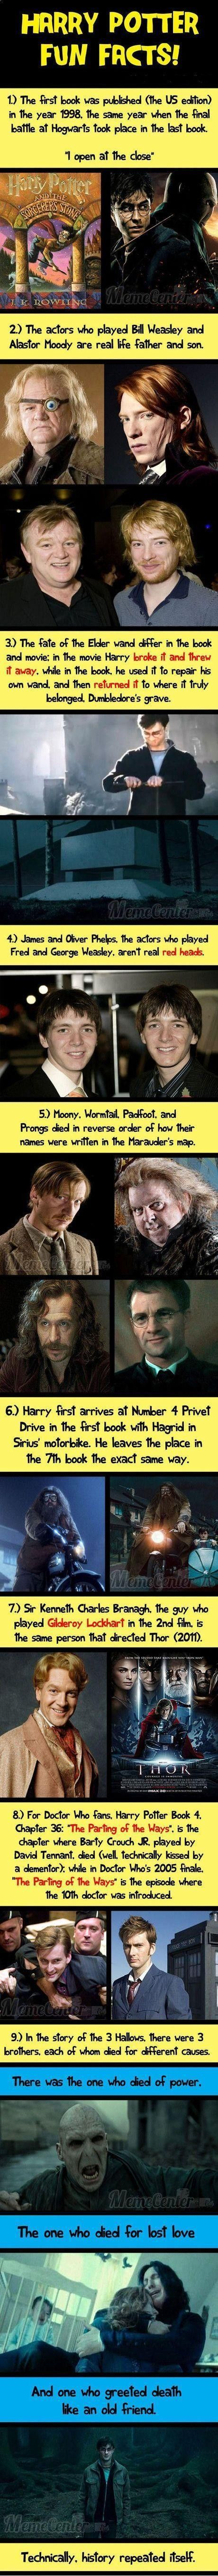 I knew so of these already but they are awesome! Harry Potter Fun Facts